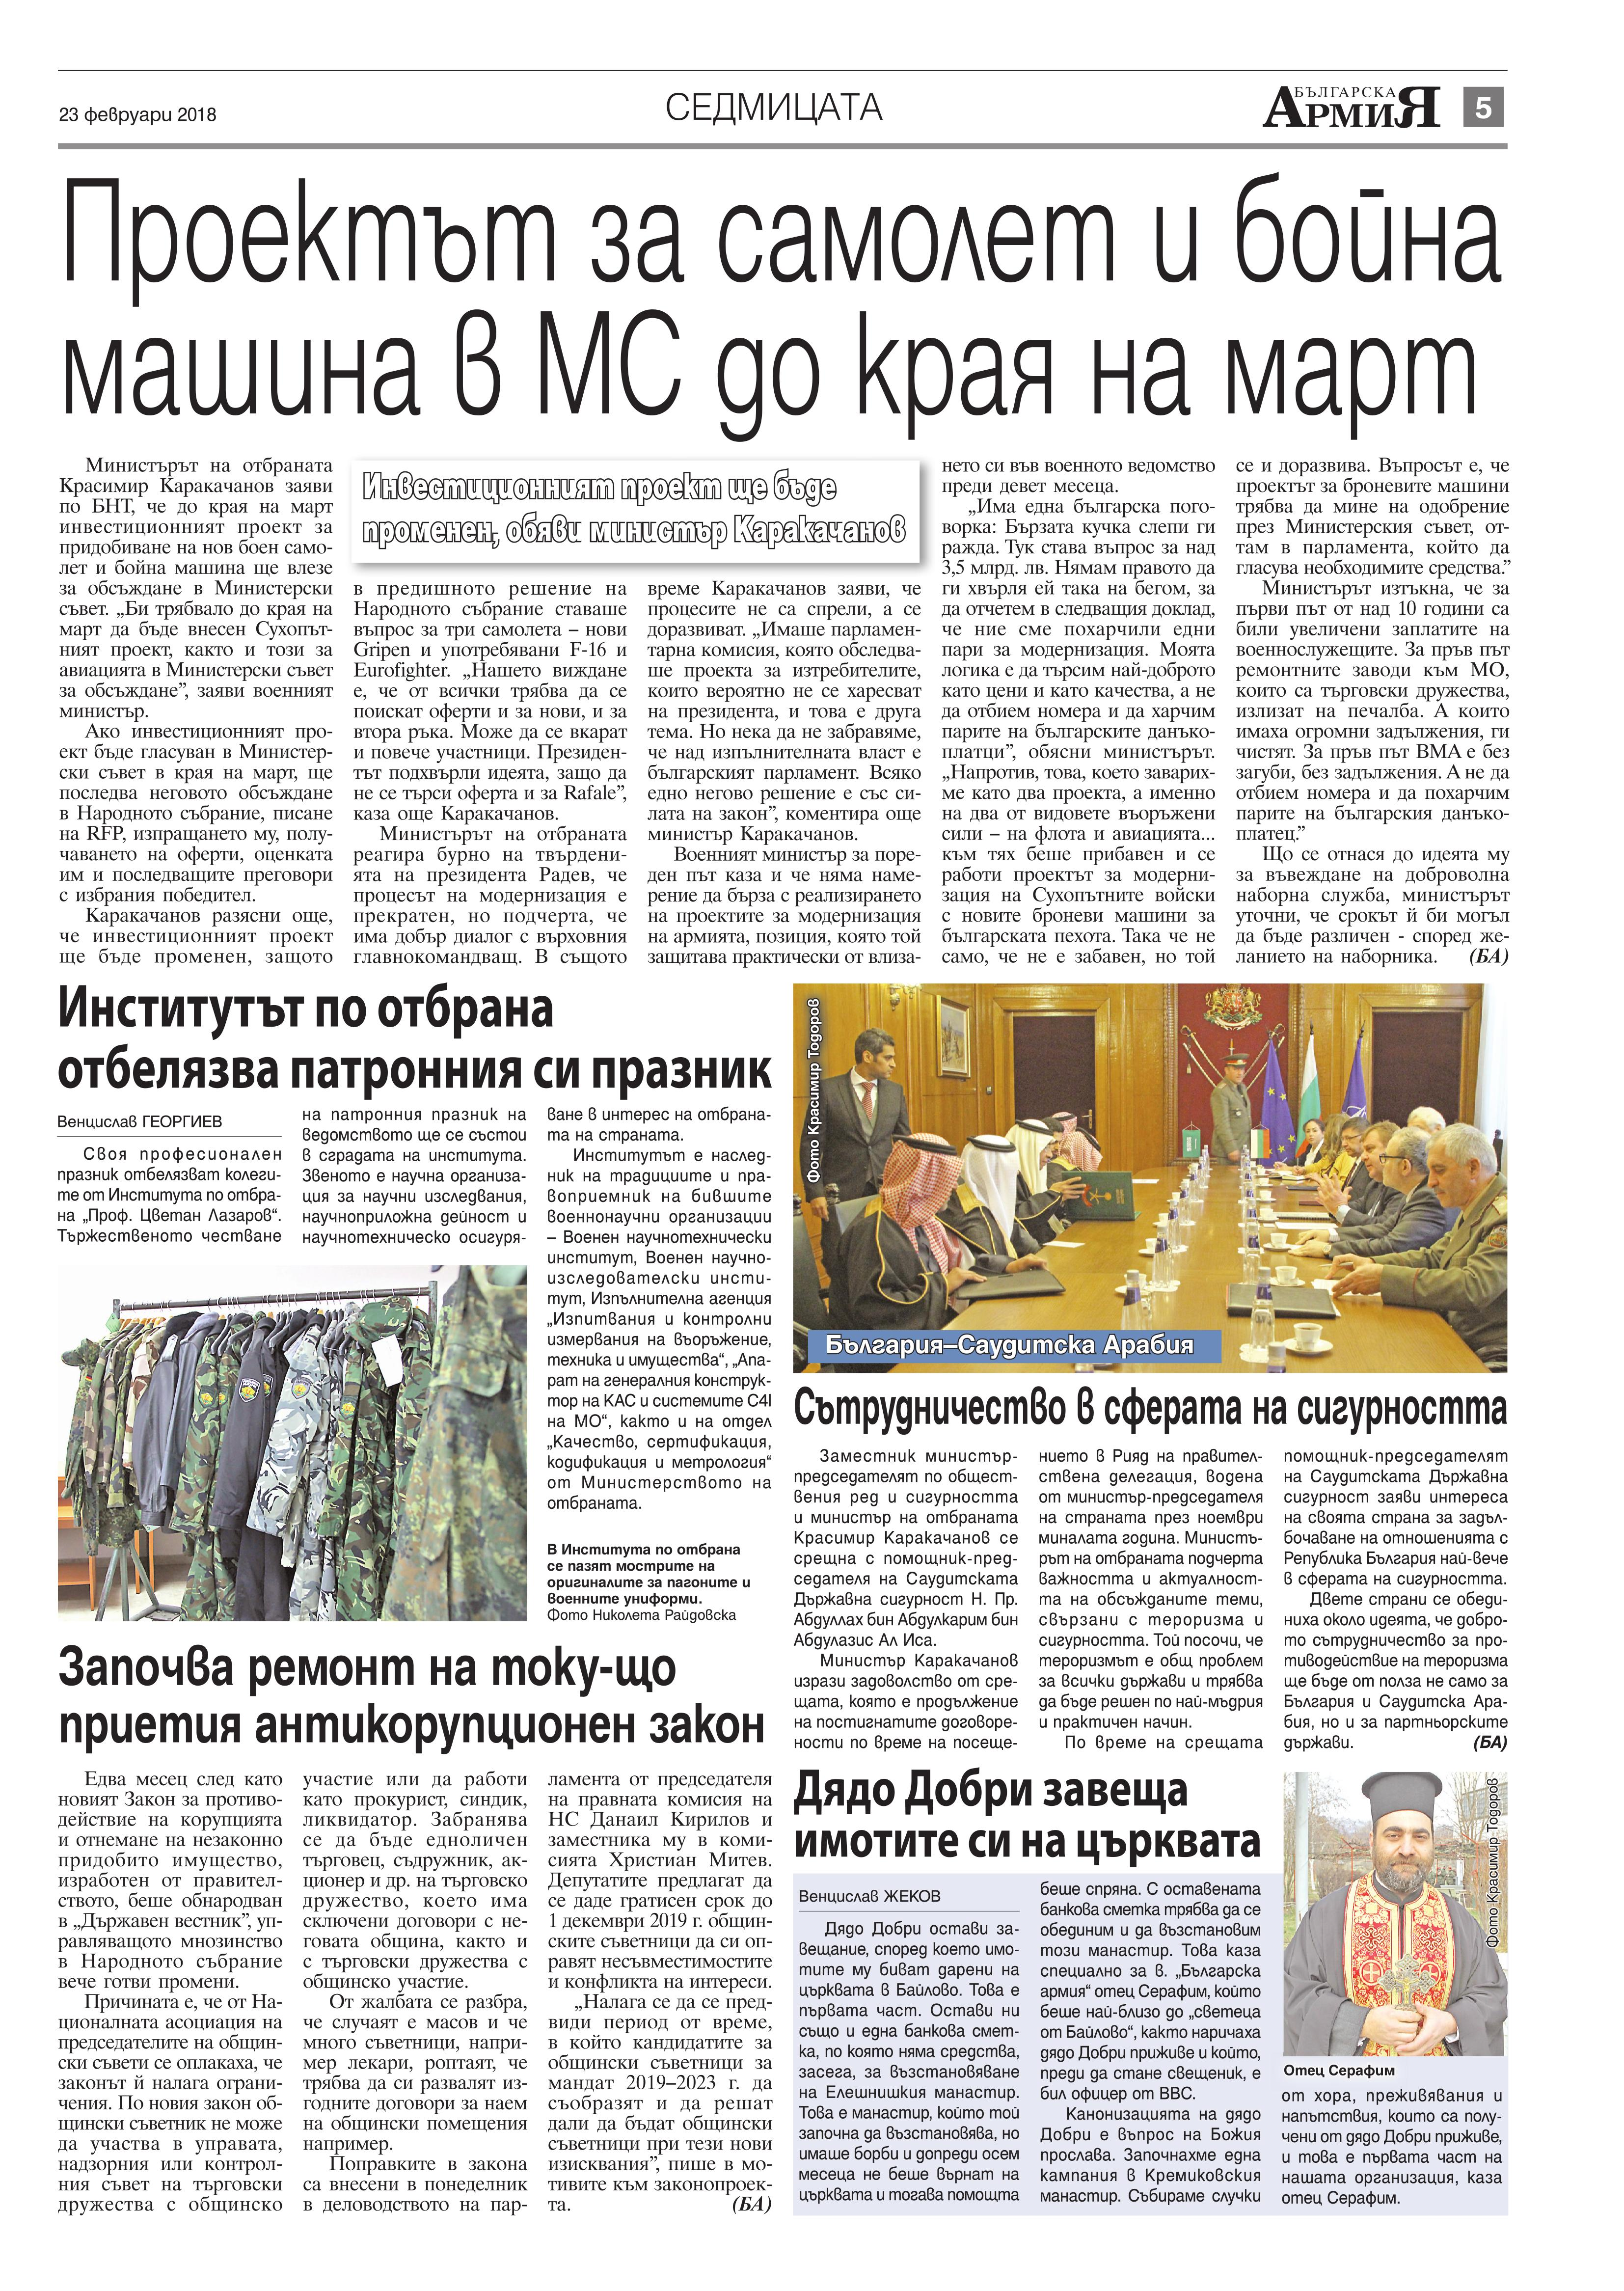 http://armymedia.bg/wp-content/uploads/2015/06/05.page1_-38.jpg